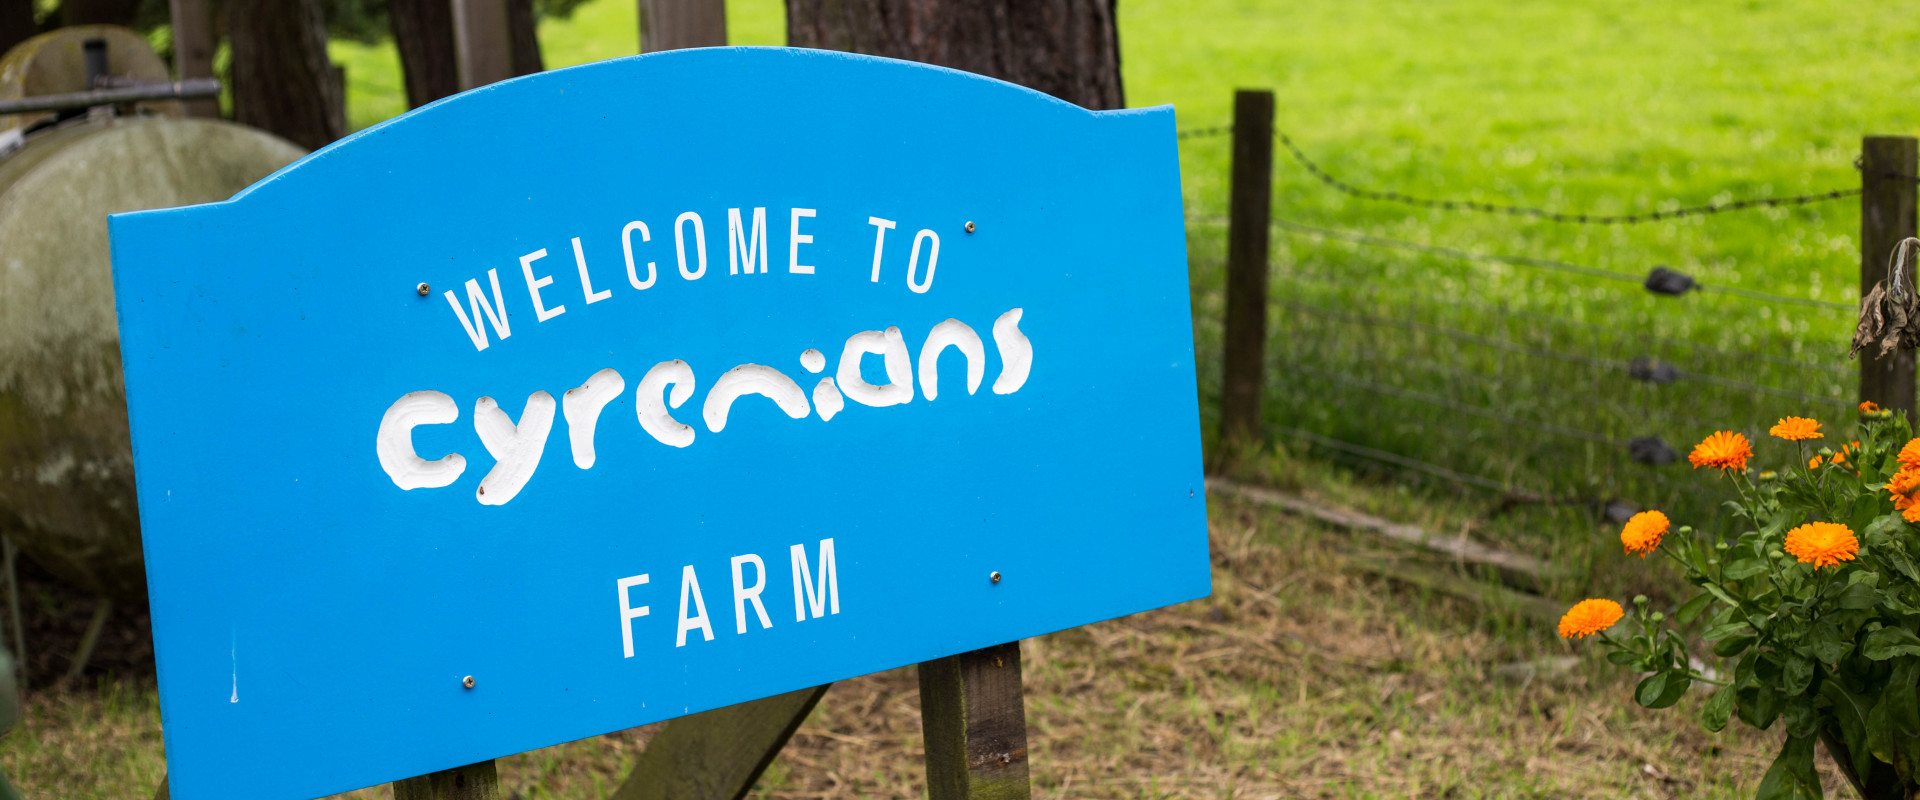 farm sign welcome